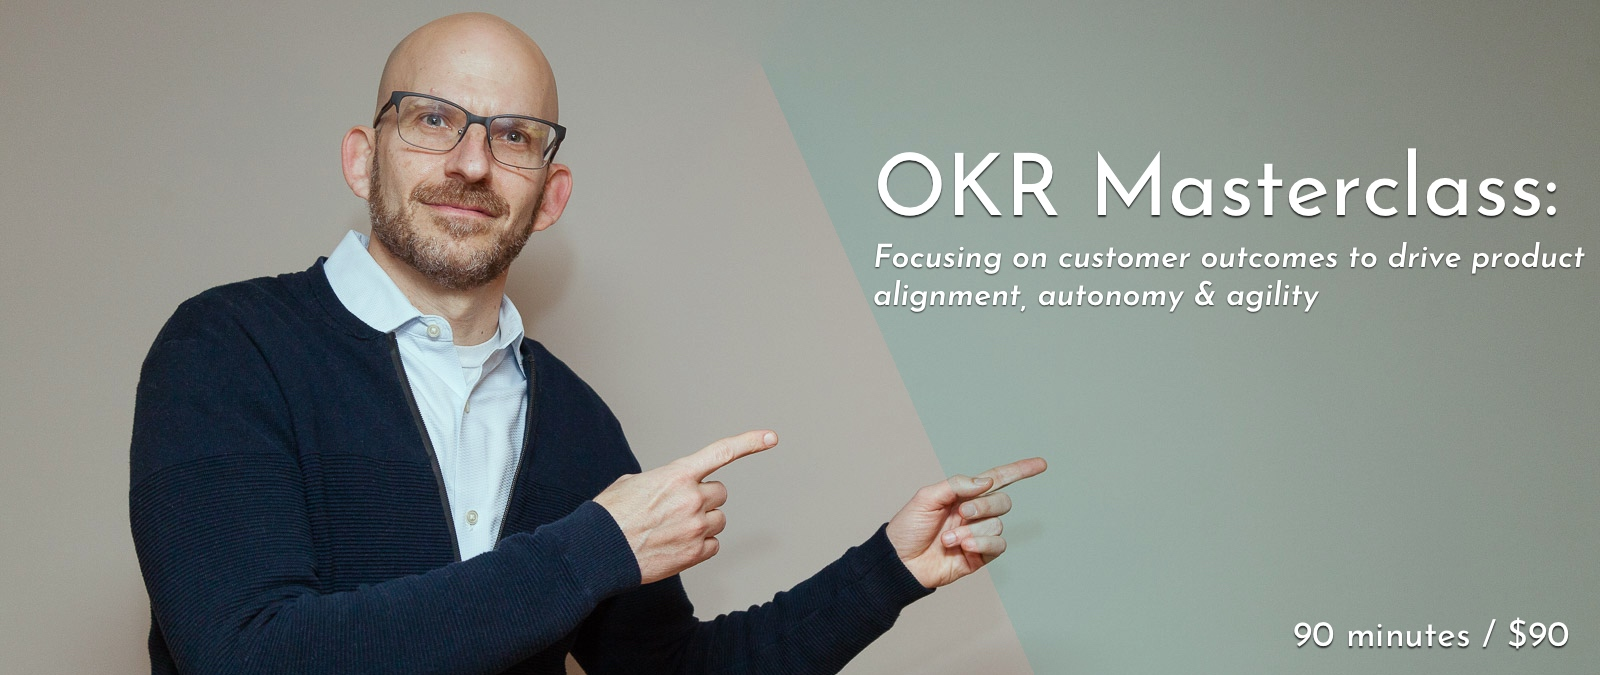 Jeff Gothelf pointing towards the OKR Masterclass title